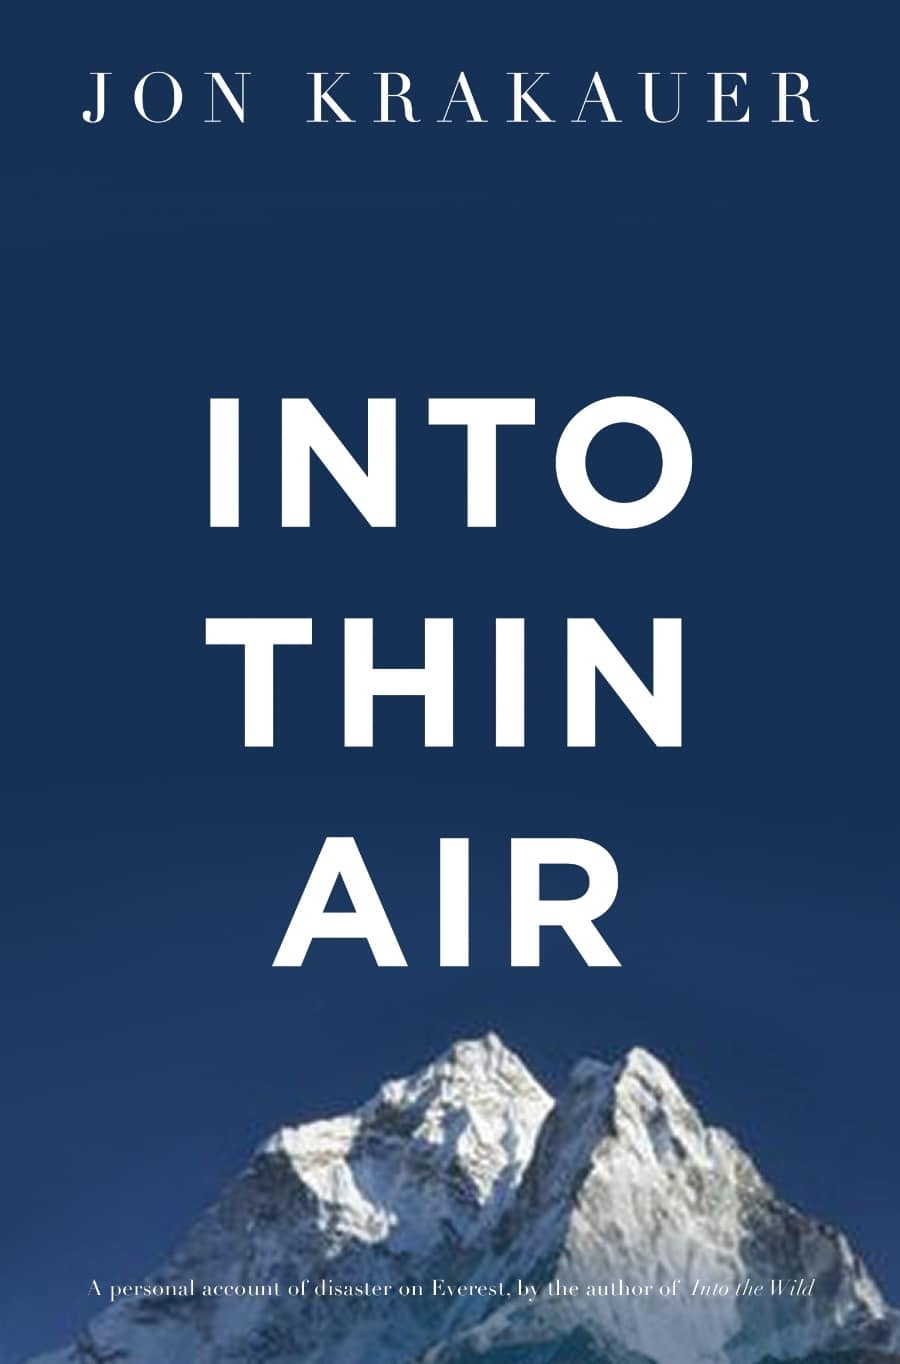 Into Thin Air by Jon Krakauer, book cover.